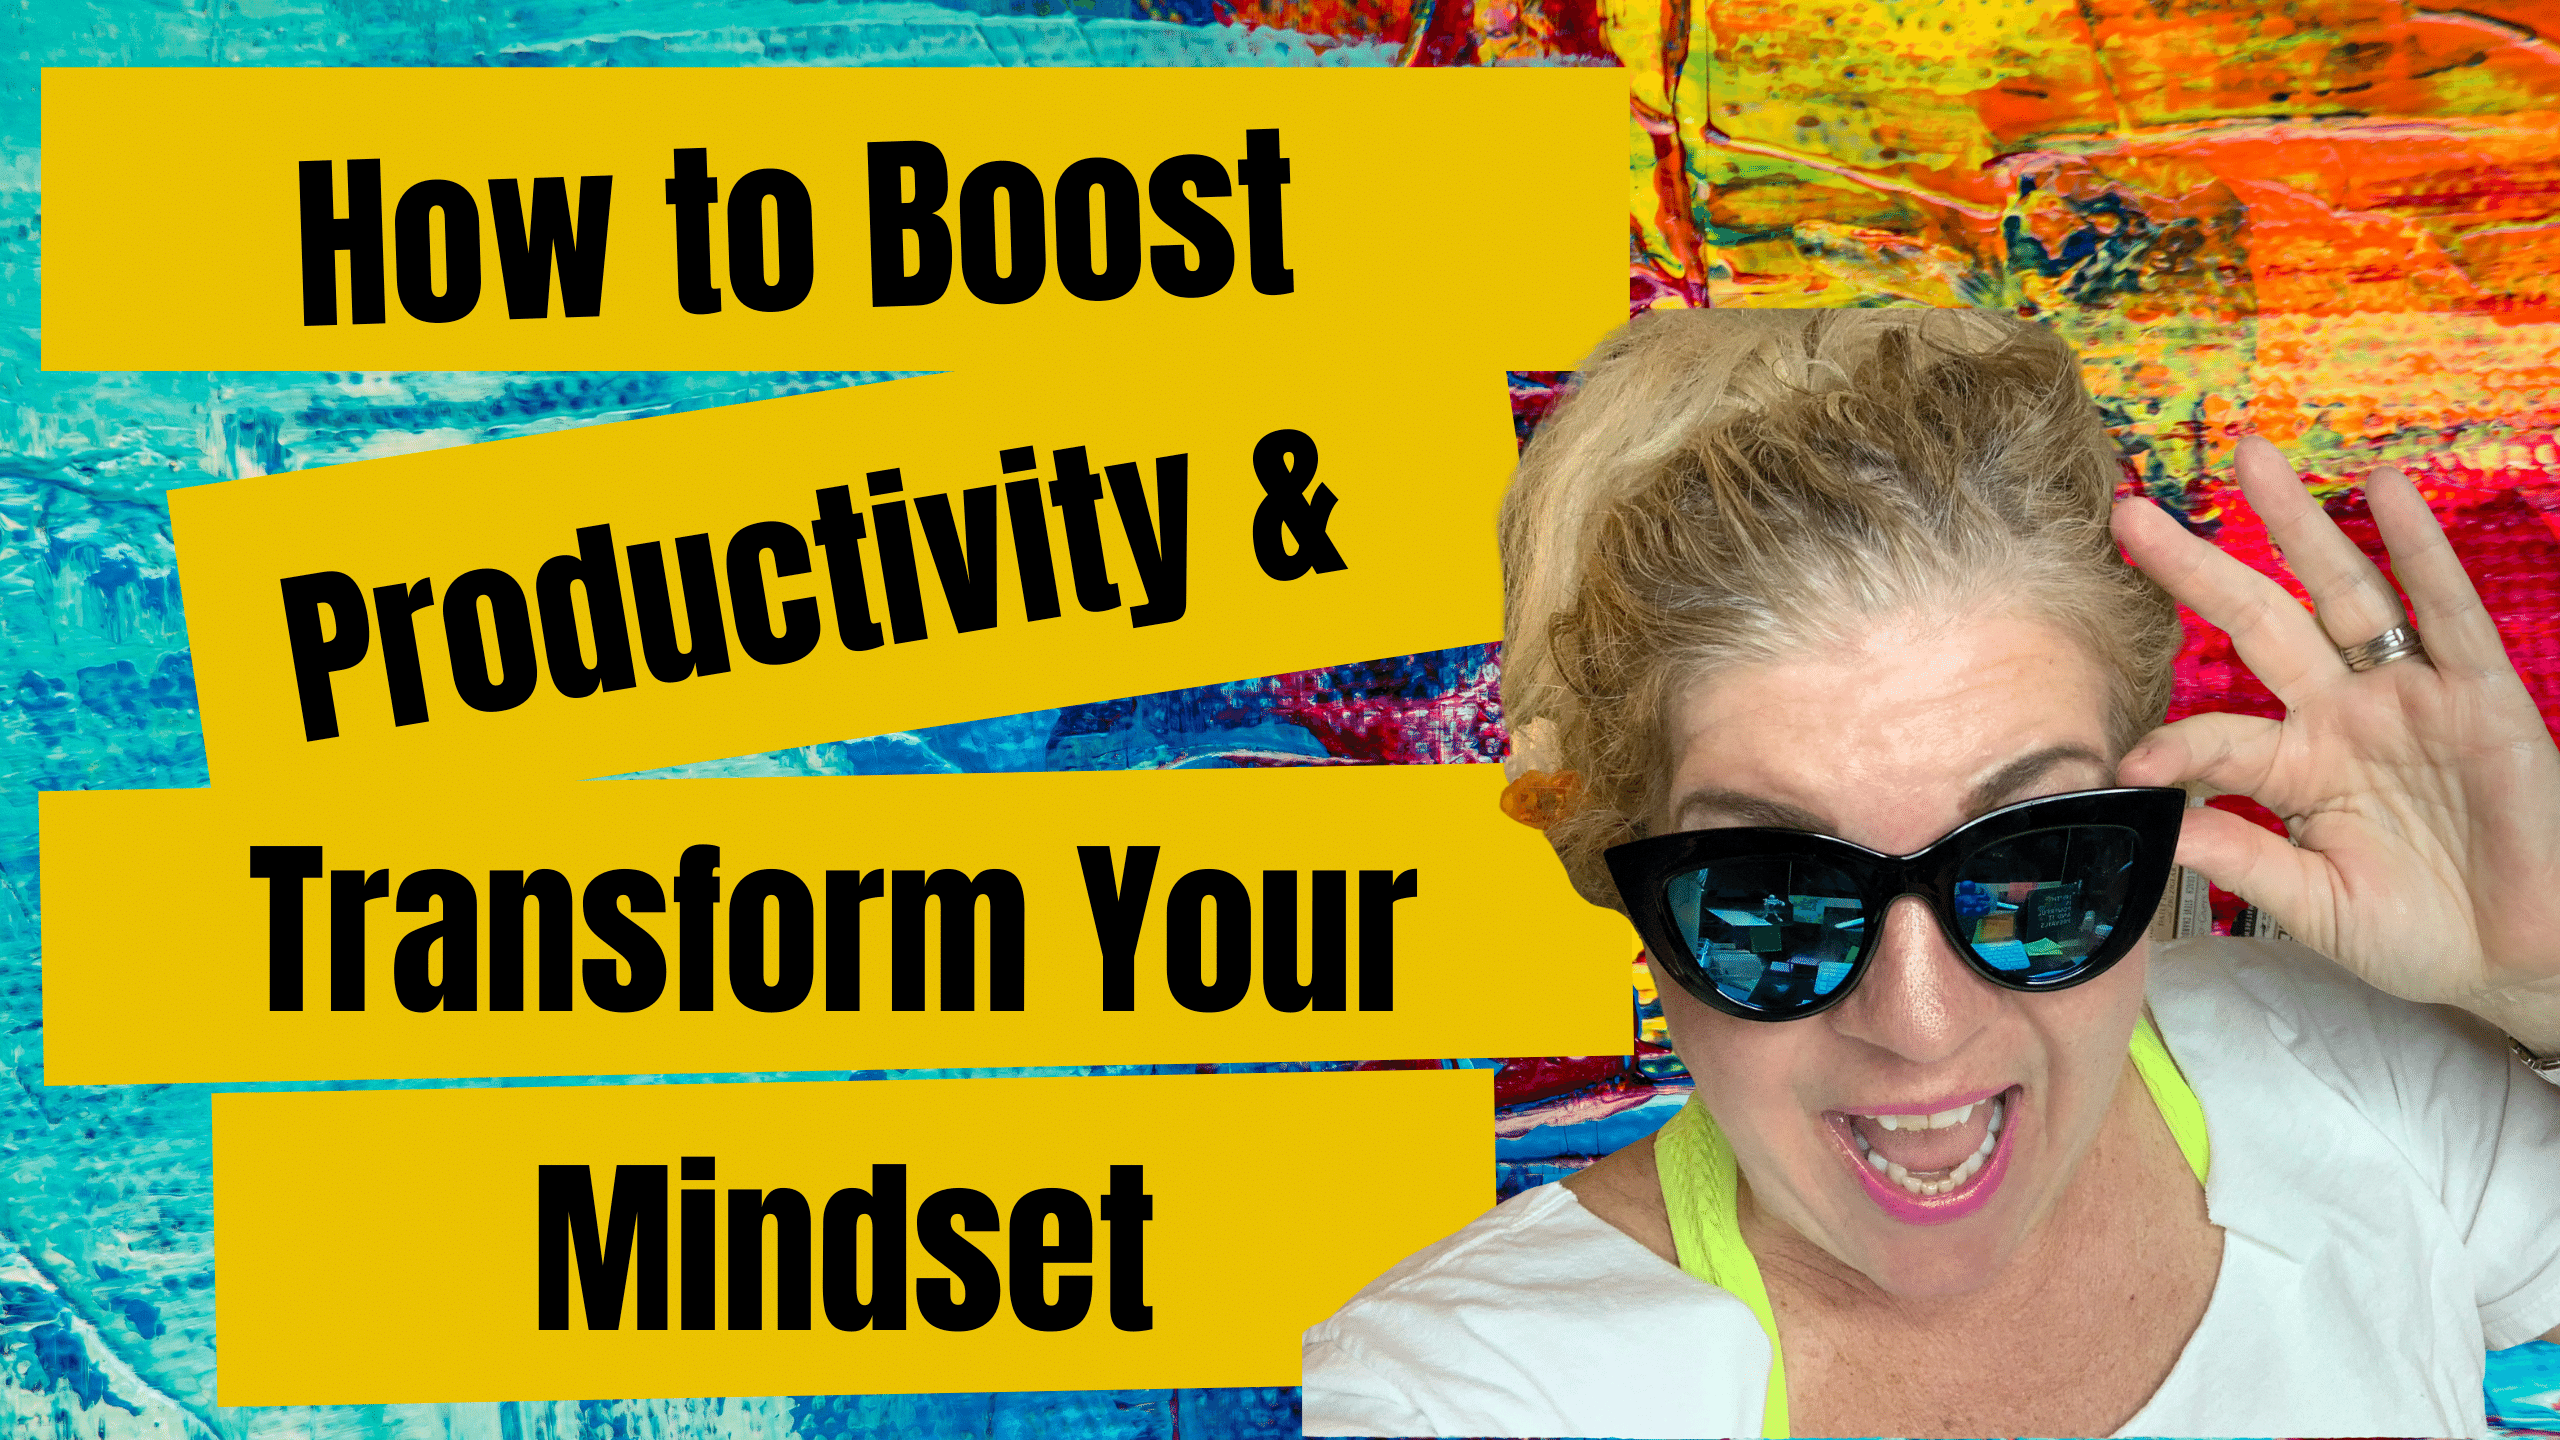 How to Boost Productivity & Transform Your Mindset